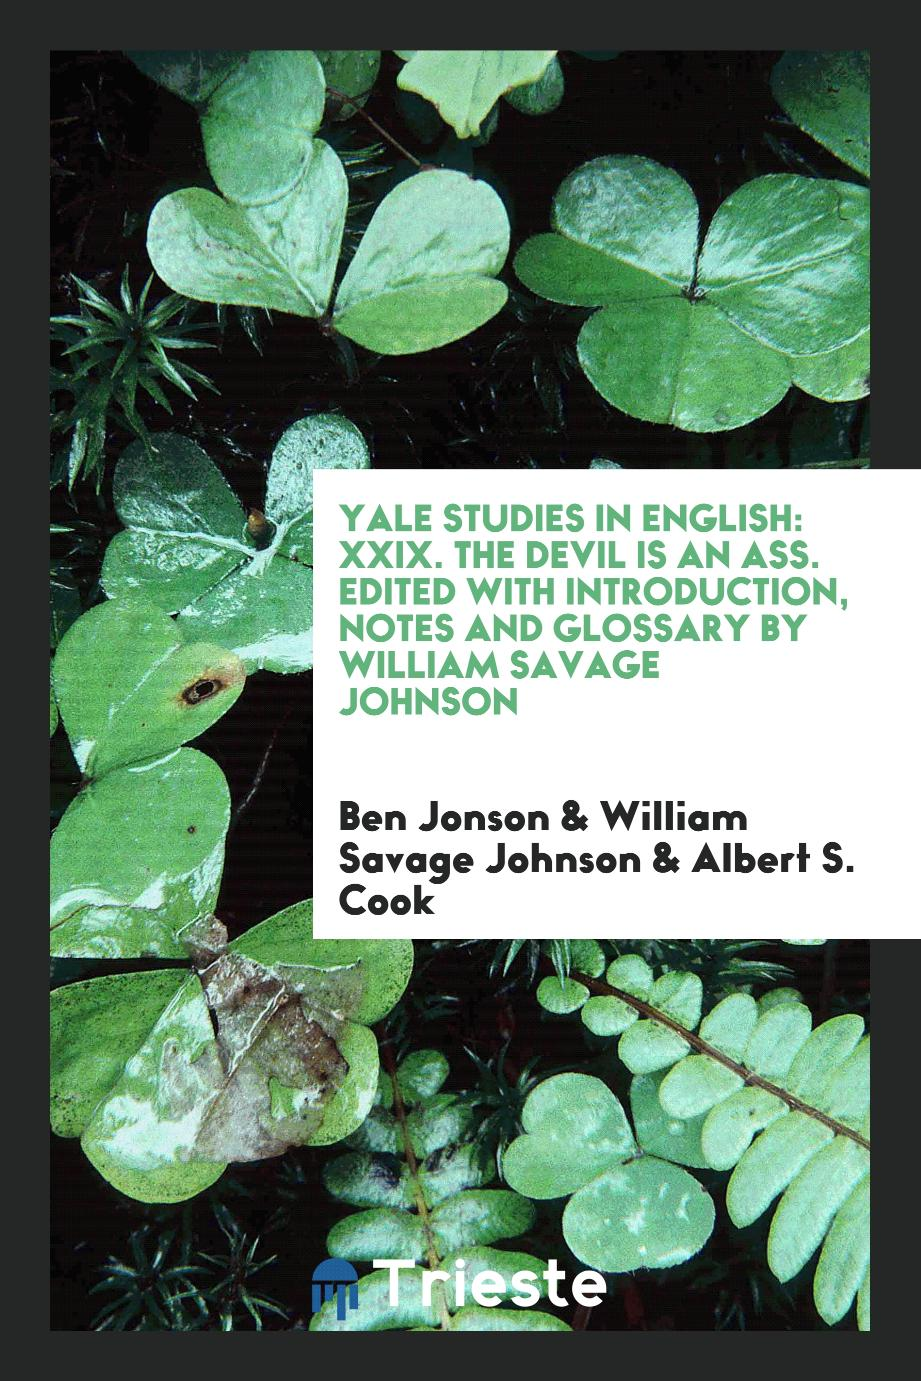 Yale Studies in English: XXIX. The Devil Is an Ass. Edited with Introduction, Notes and Glossary by William Savage Johnson